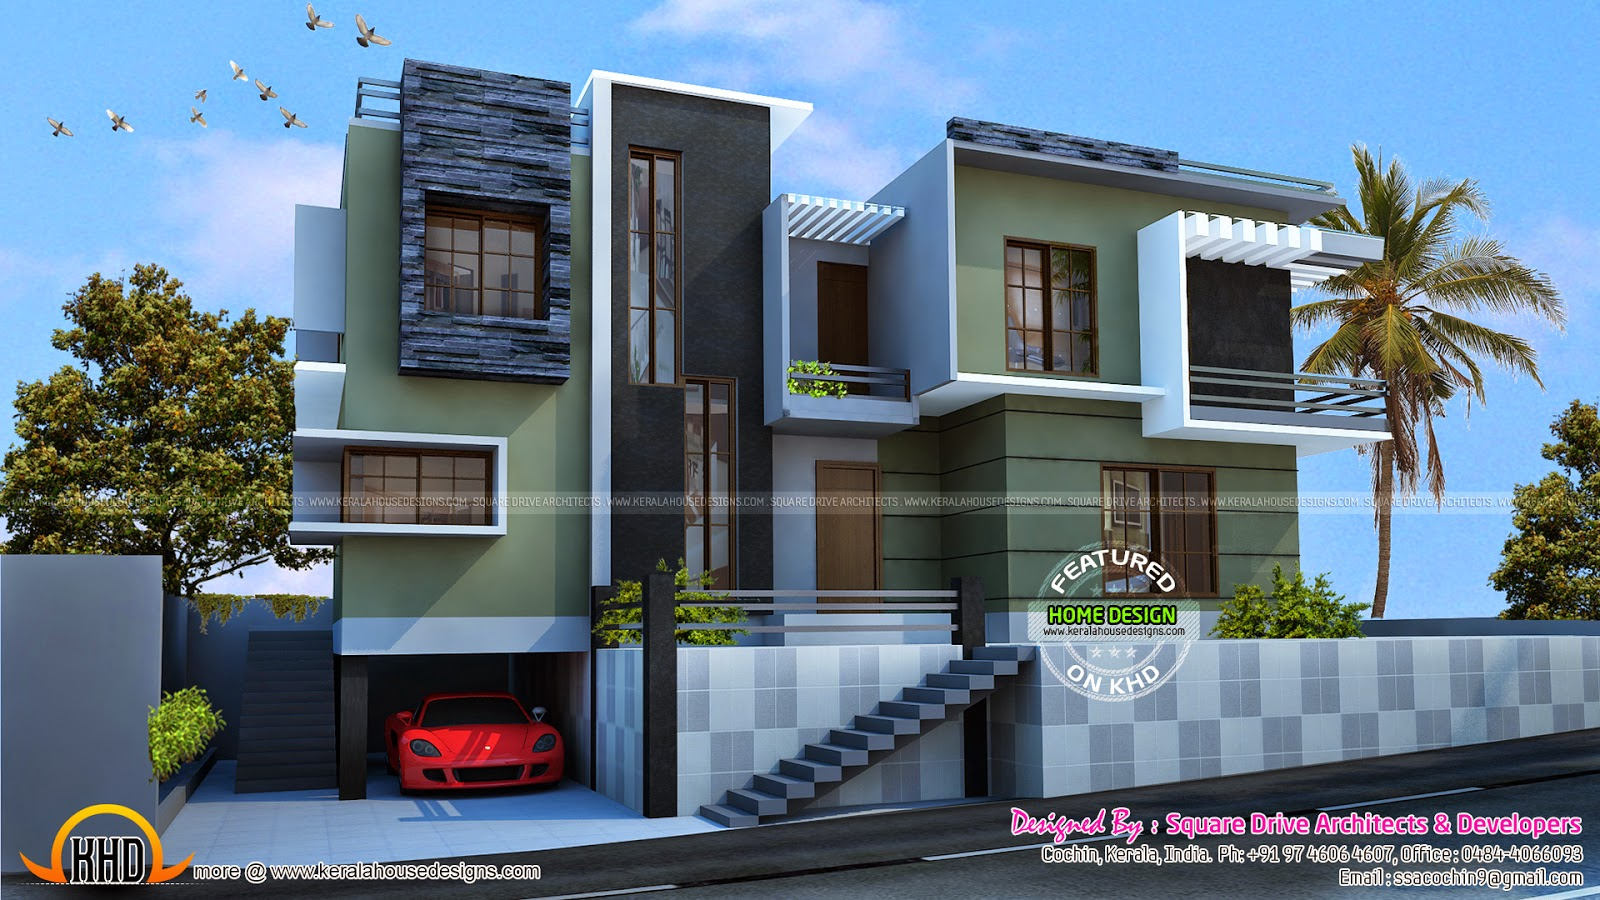 House plans and design modern house plans duplex for Modern home design 2015